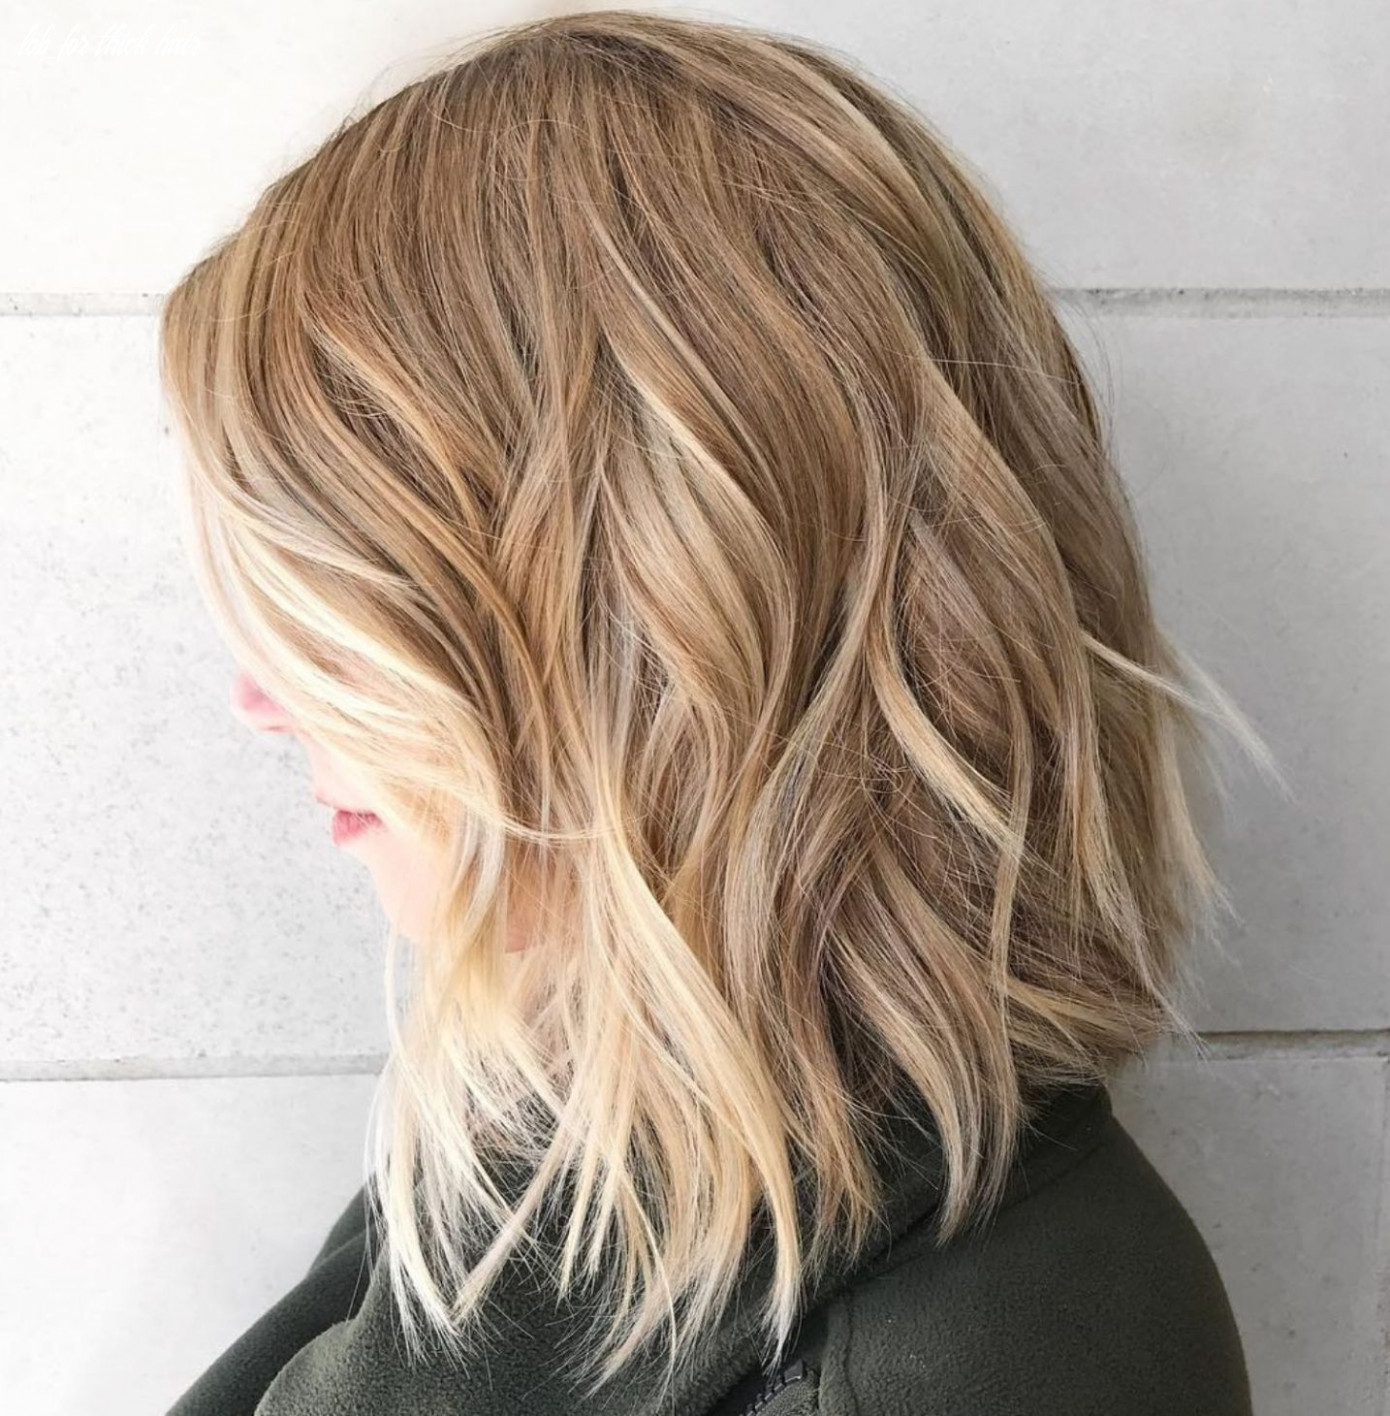 10 most beneficial haircuts for thick hair of any length | thick